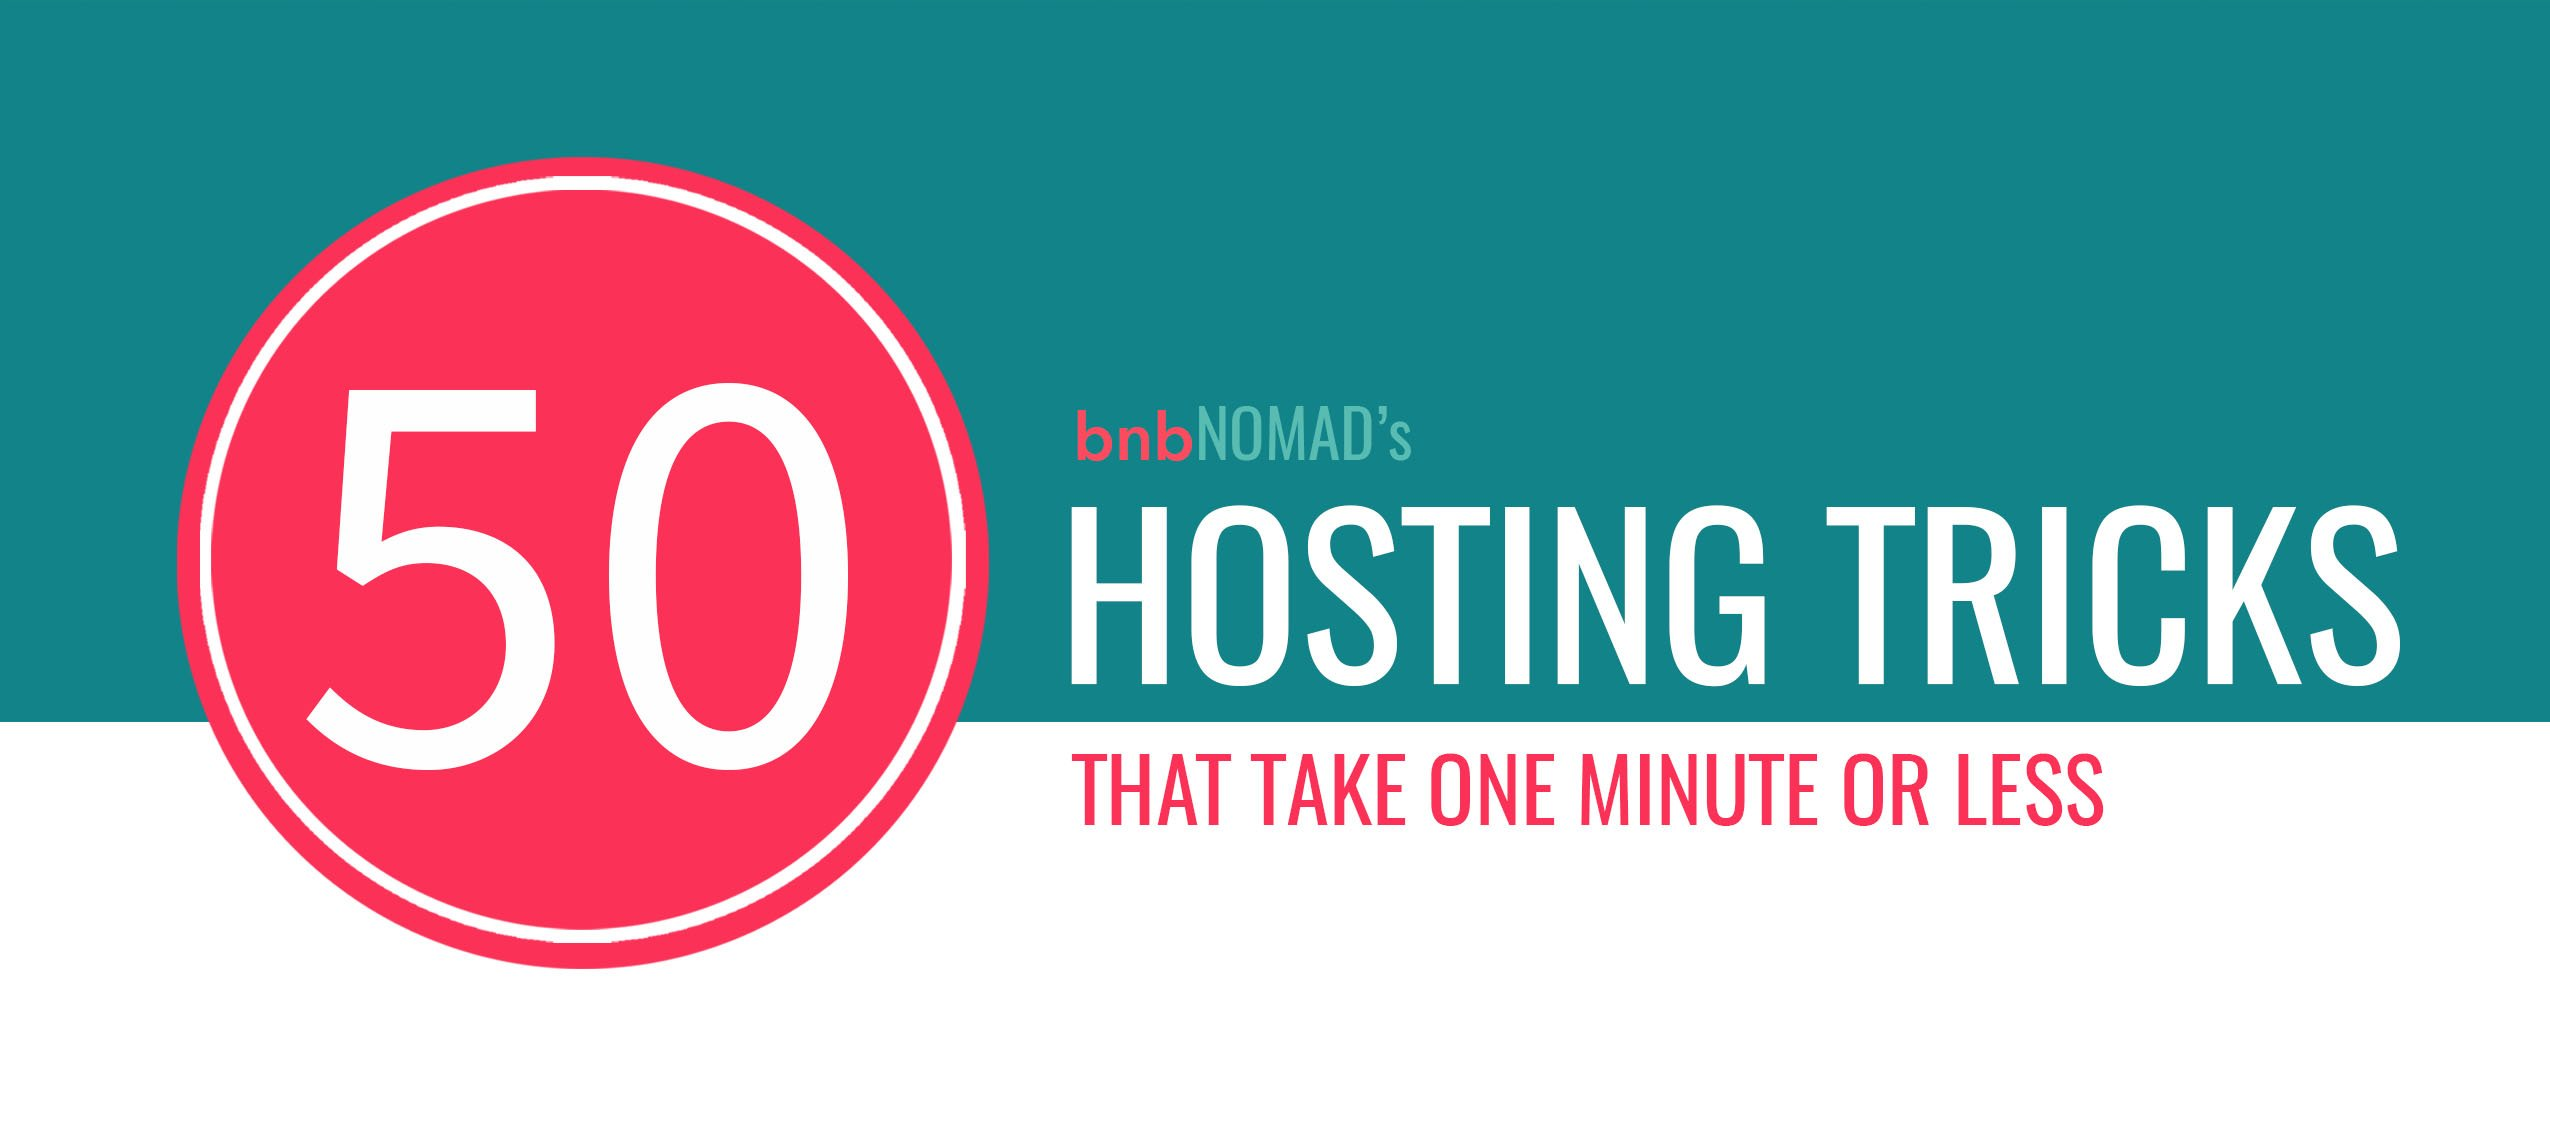 bnbNomad's 50 Airbnb Hosting Tricks that take one minute or less